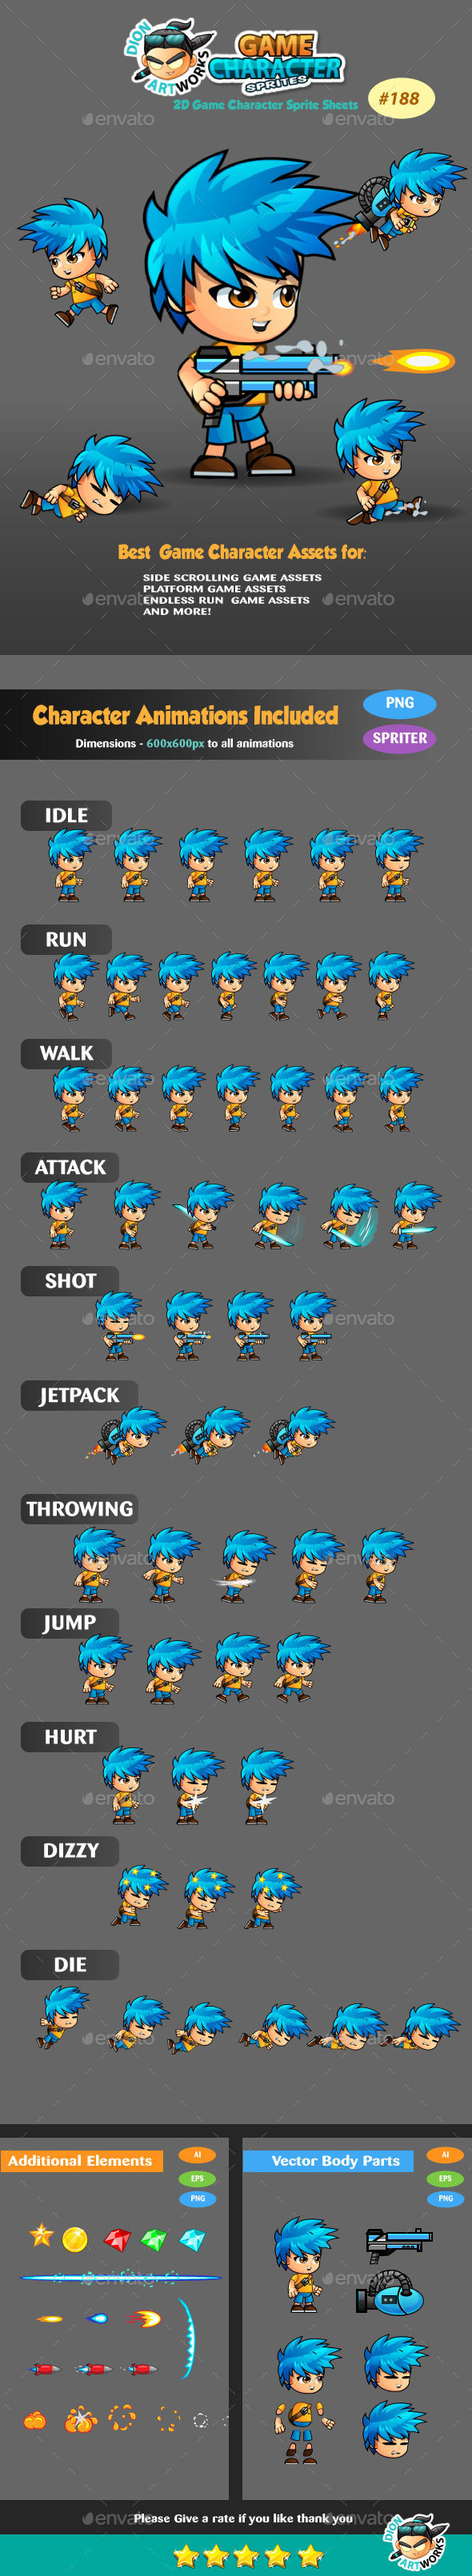 2D Game Character Sprite Sheets 188 - Sprites Game Assets